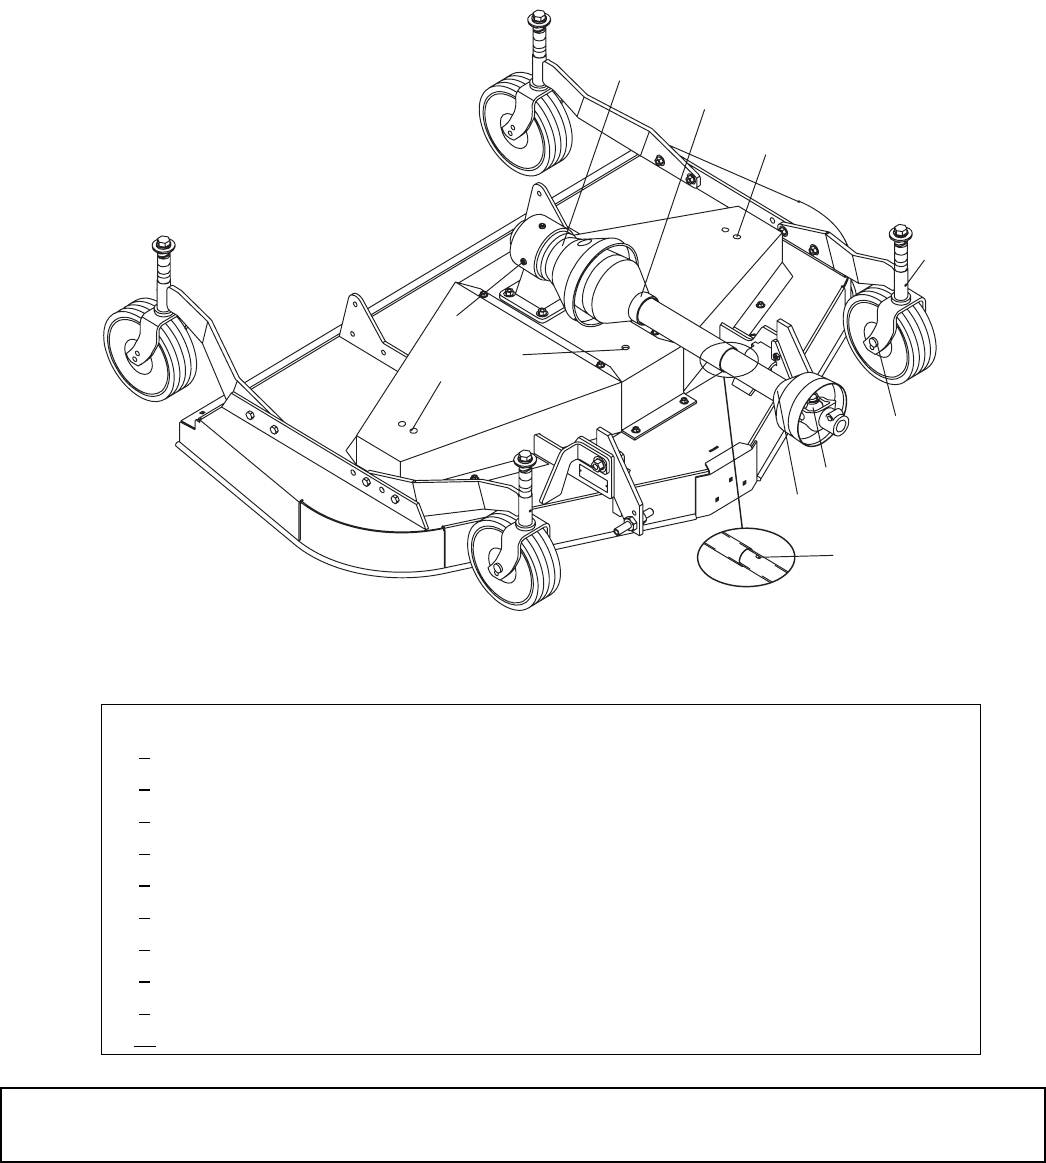 woods belly mower parts diagram  woods  get free image